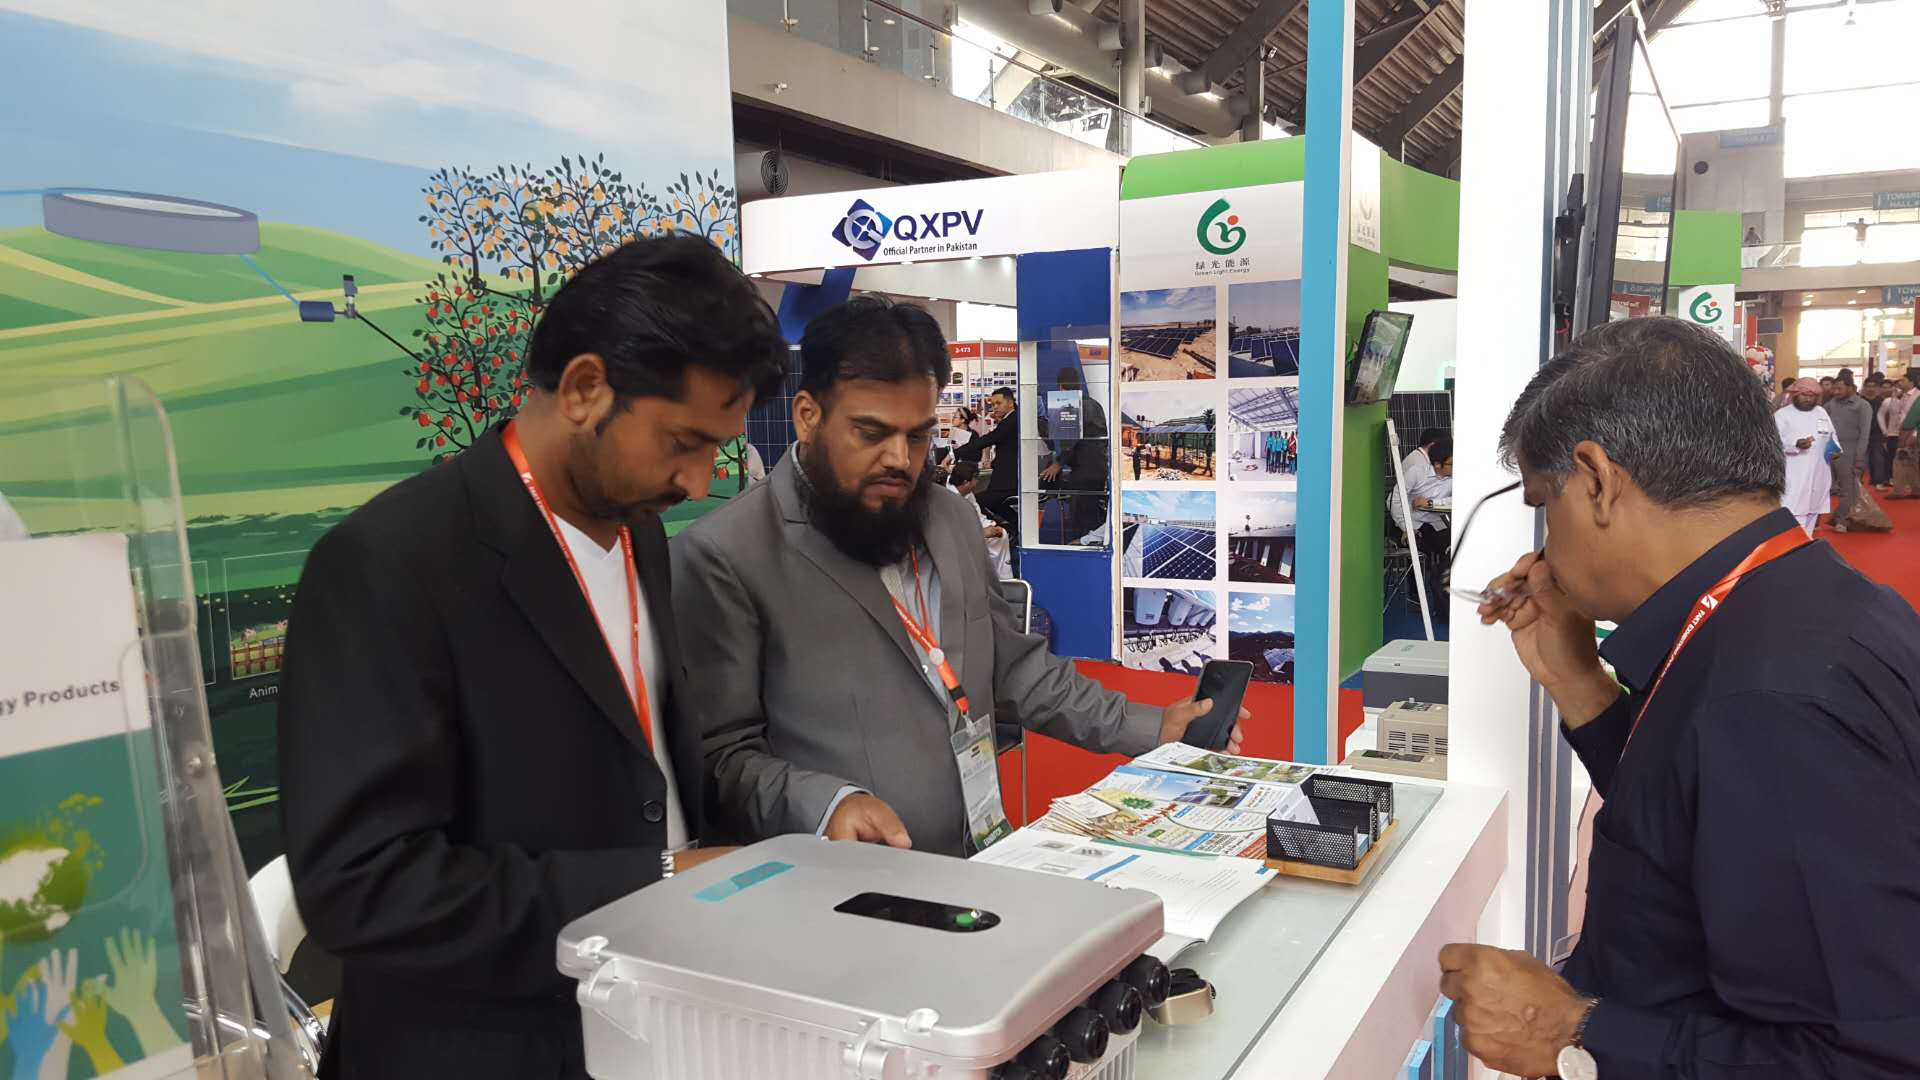 The event focused on Photovoltaic, smart energy solutions and technology, energy storage systems & renewable heating.